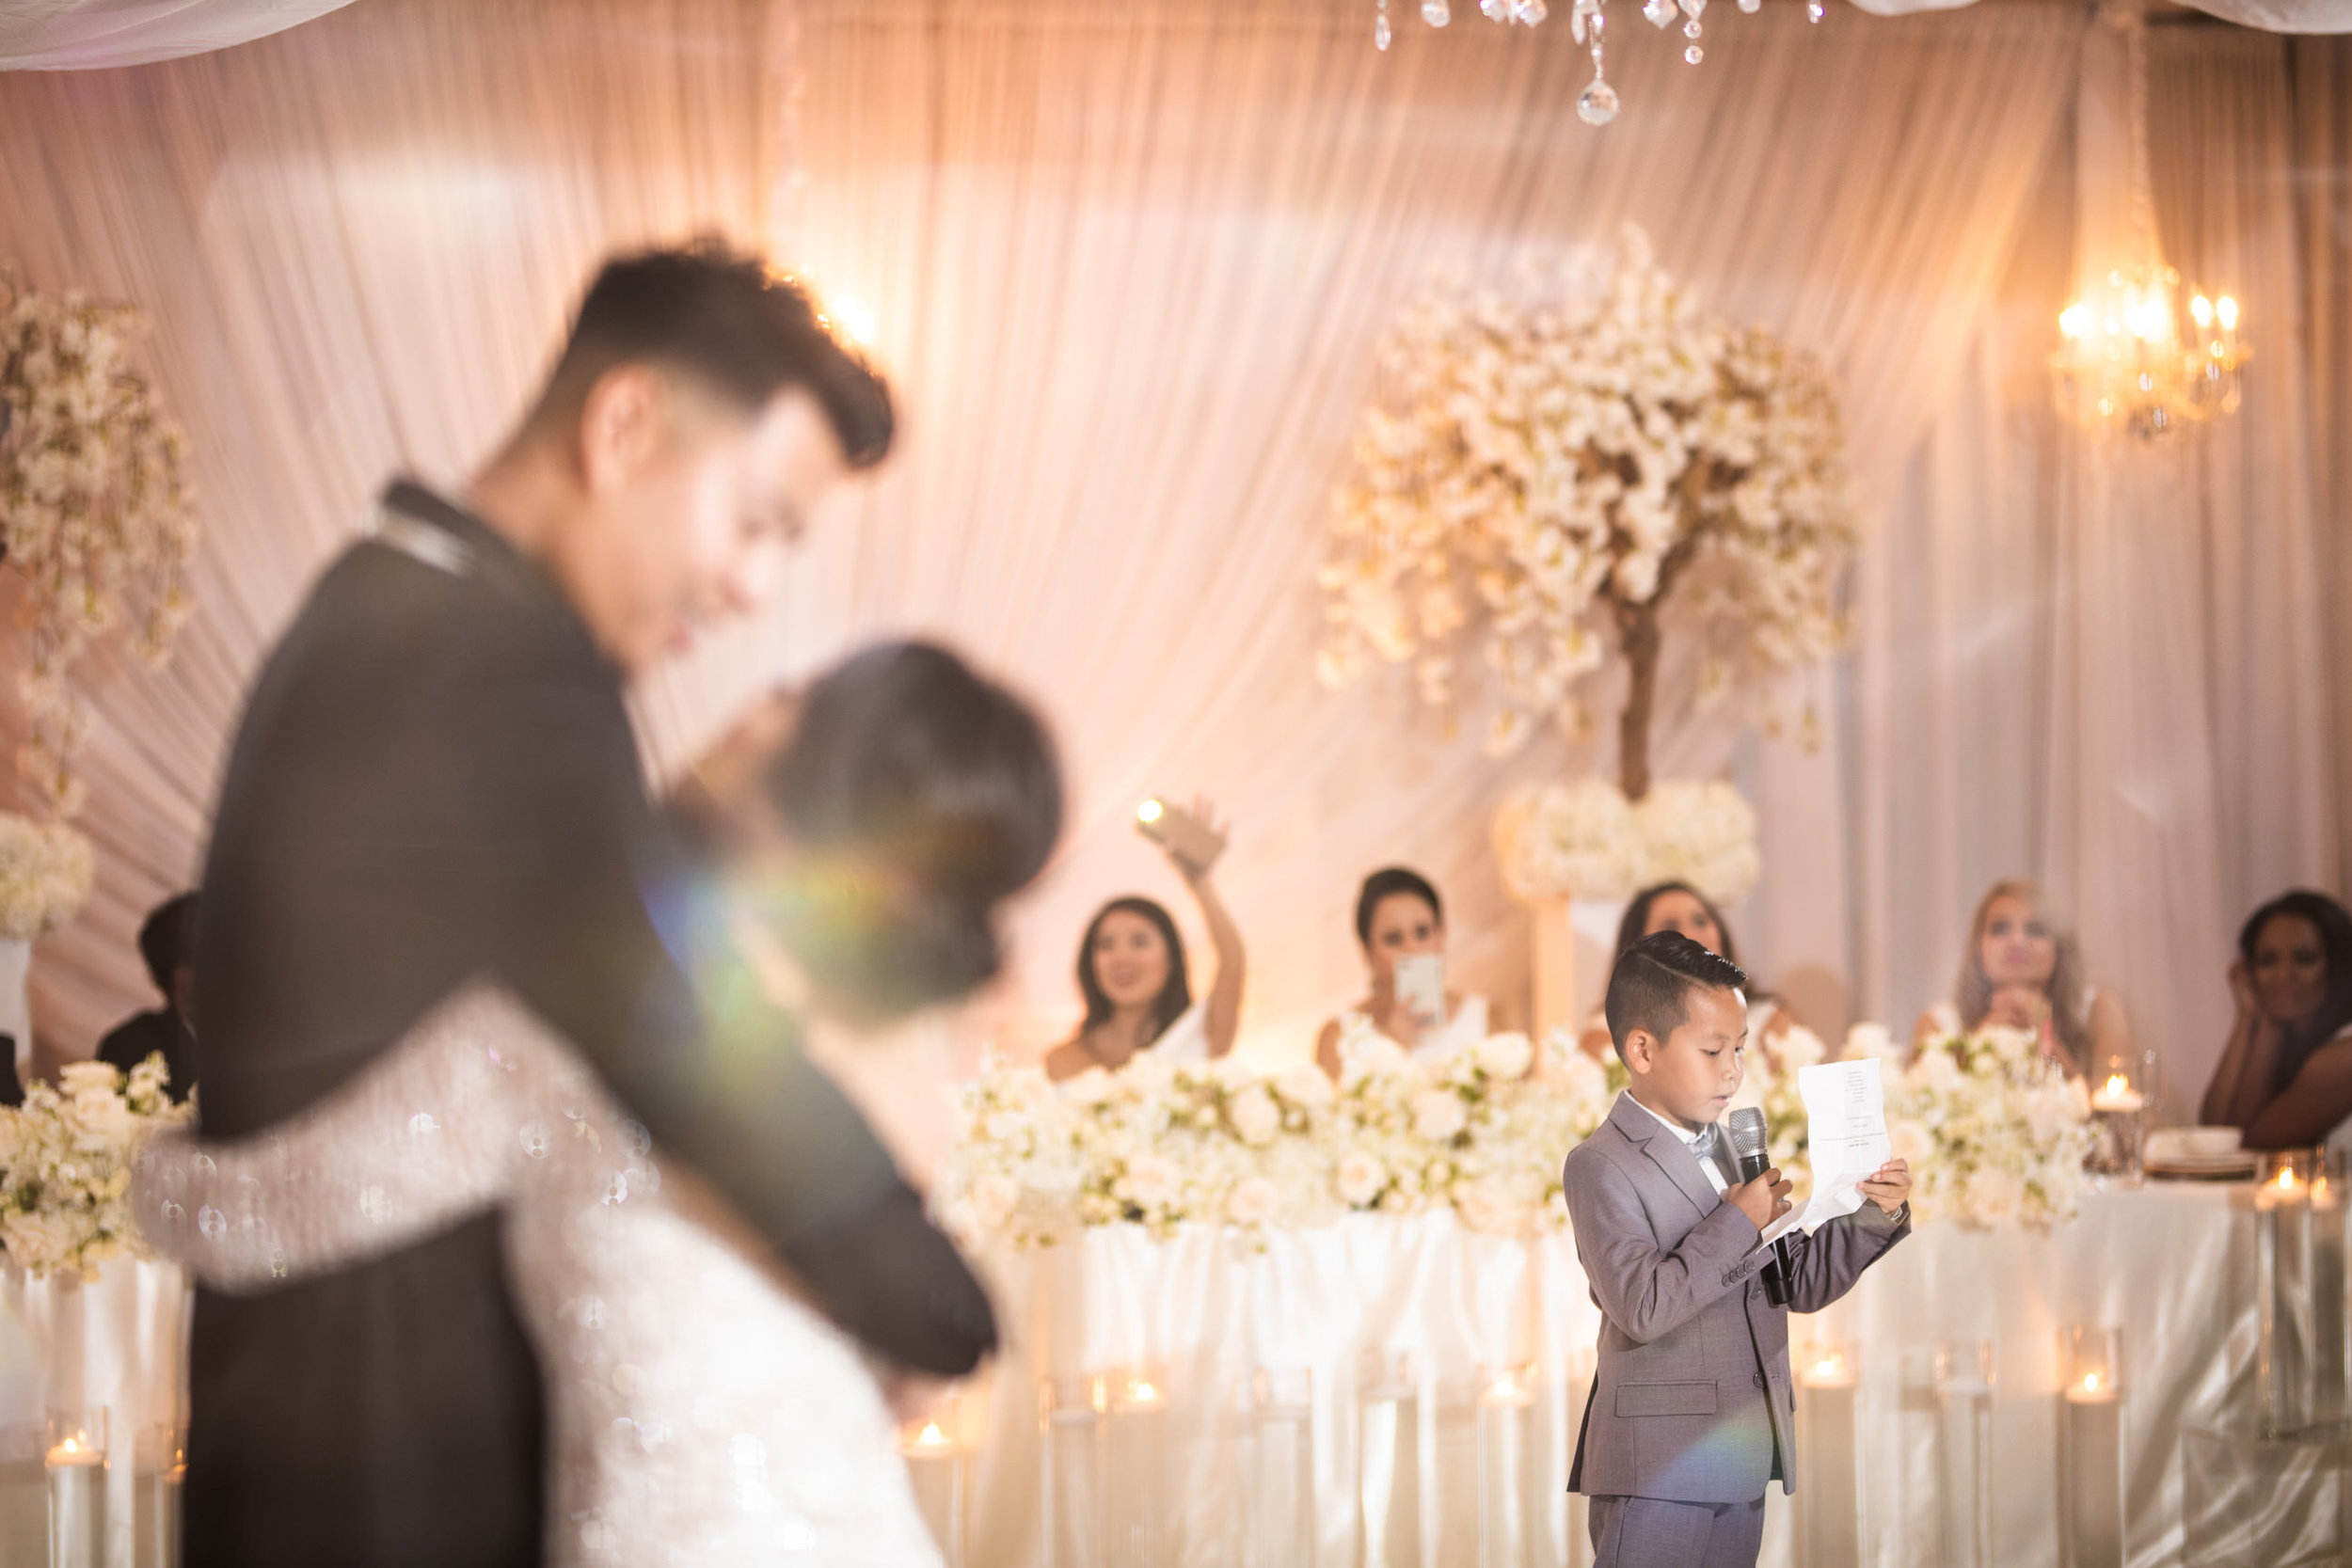 Dream_Wedding_Thanh_Thanh-3272.jpg